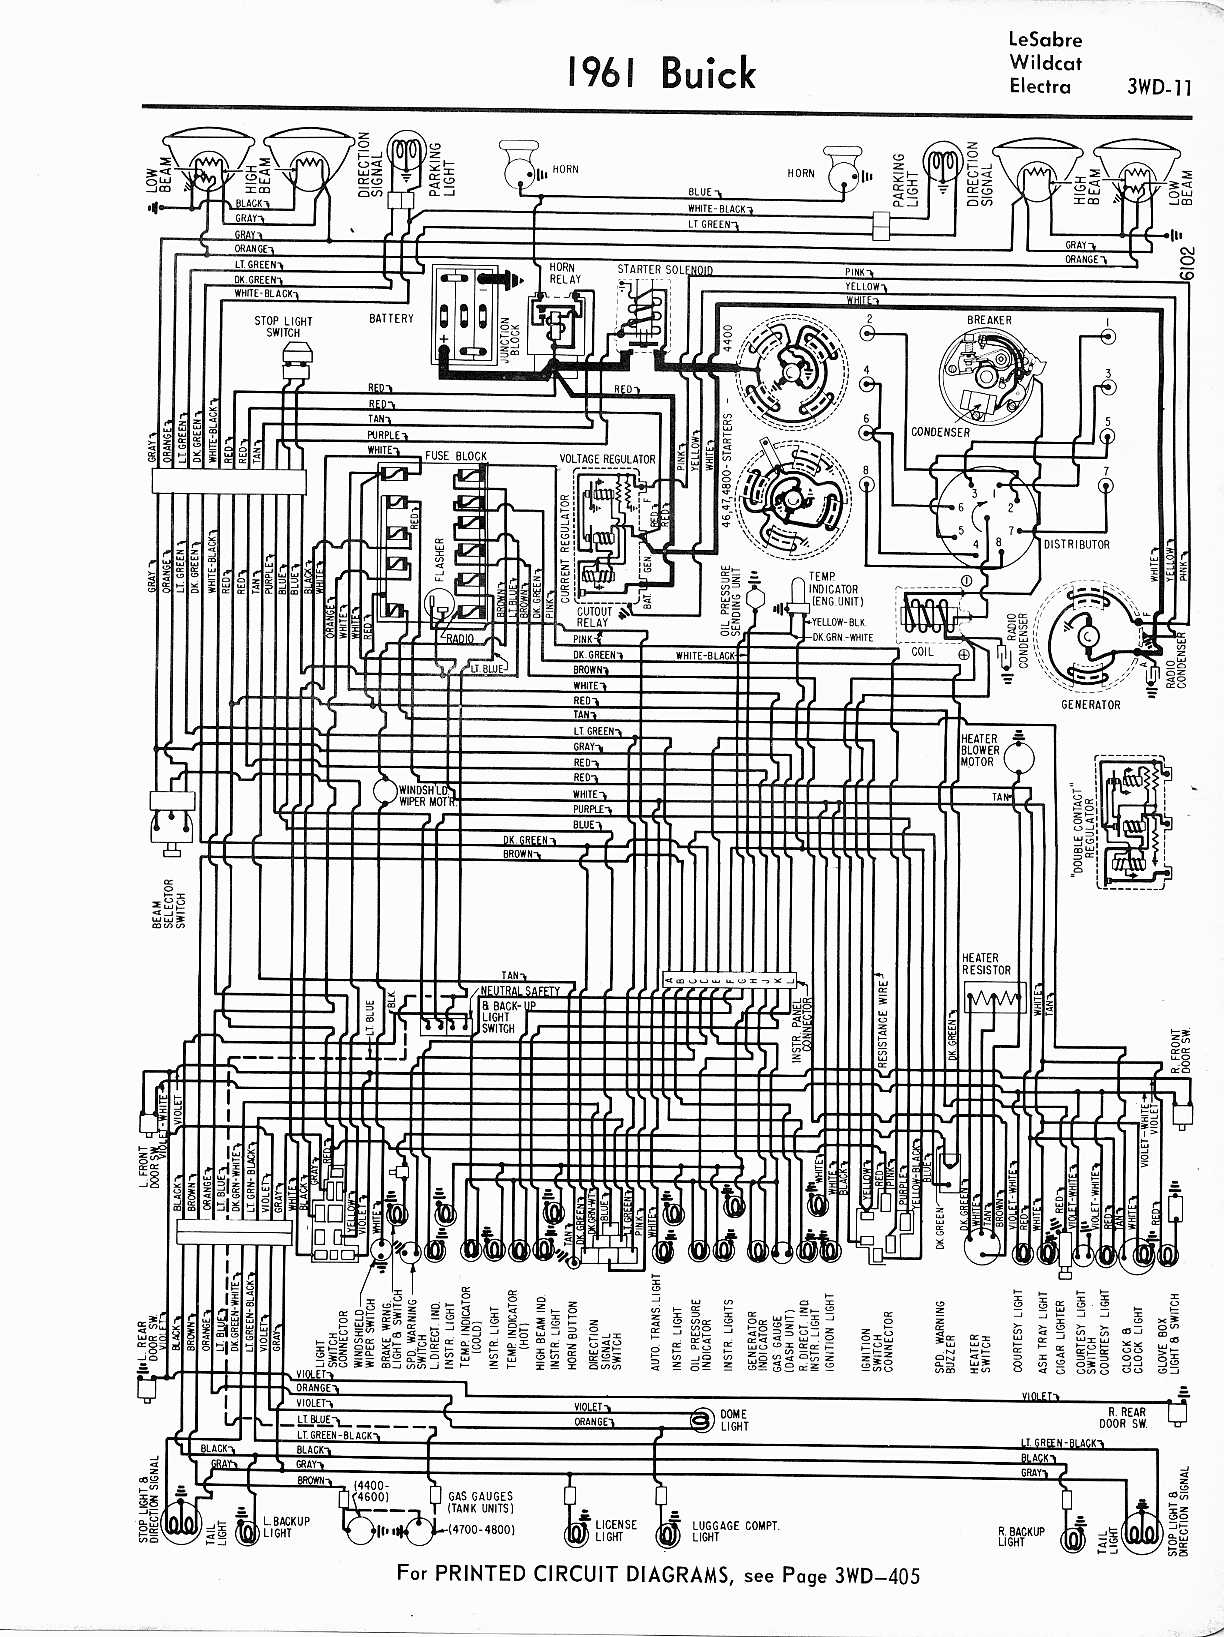 MWireBuic65_3WD 011 buick wiring diagrams 1957 1965 wiring diagram for 2000 buick century at cos-gaming.co